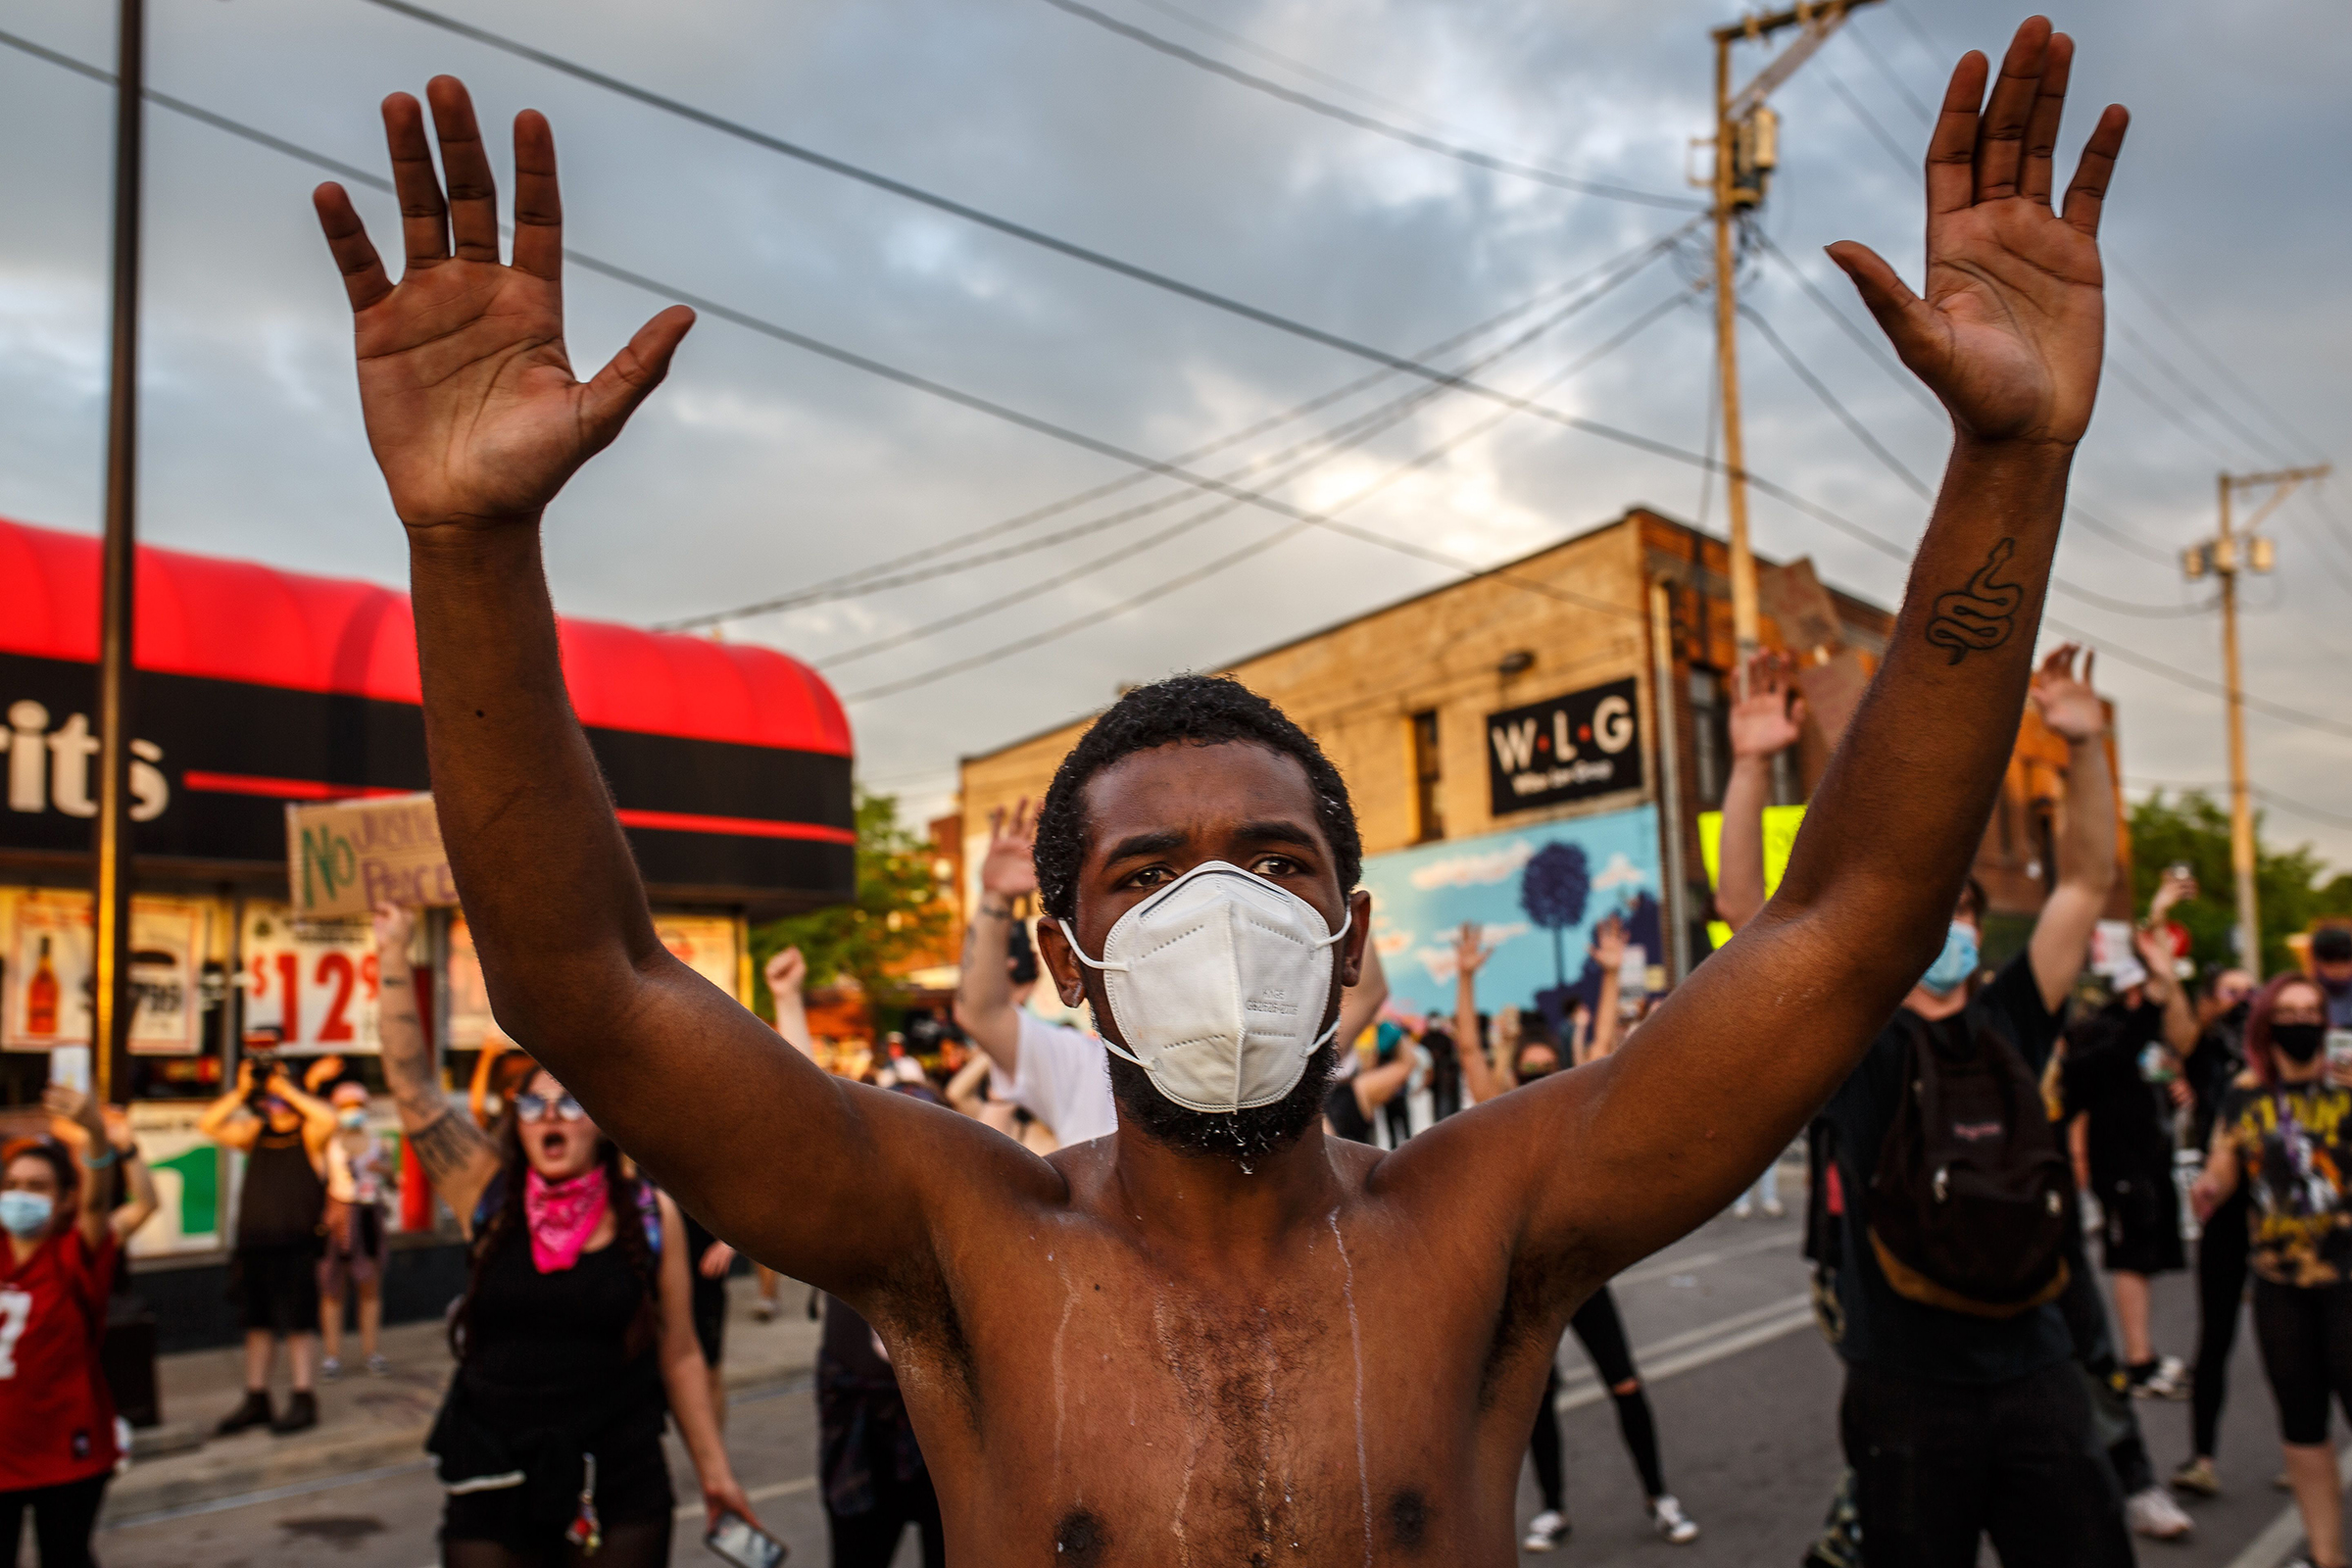 A protester wearing a mask holds up his hands during a demonstration outside the 3rd precinct on May 27.